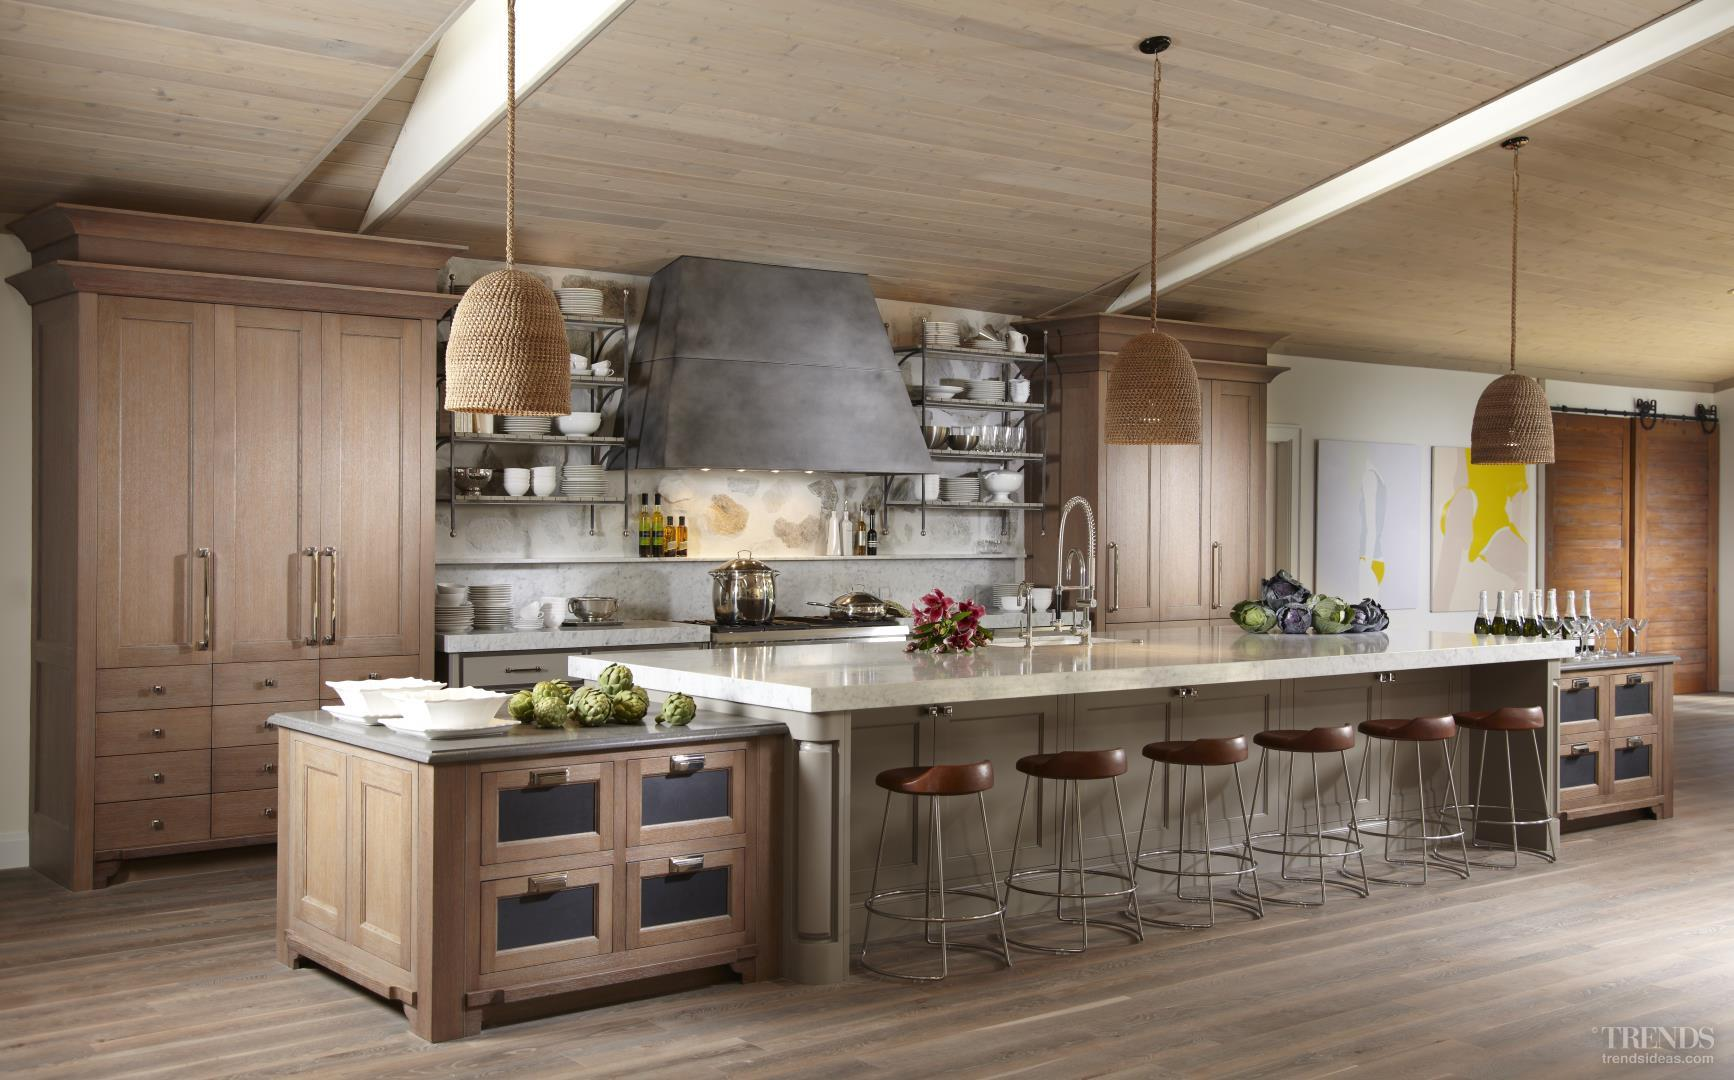 Natural Organic Materials For Renovated Kitchen In Beach